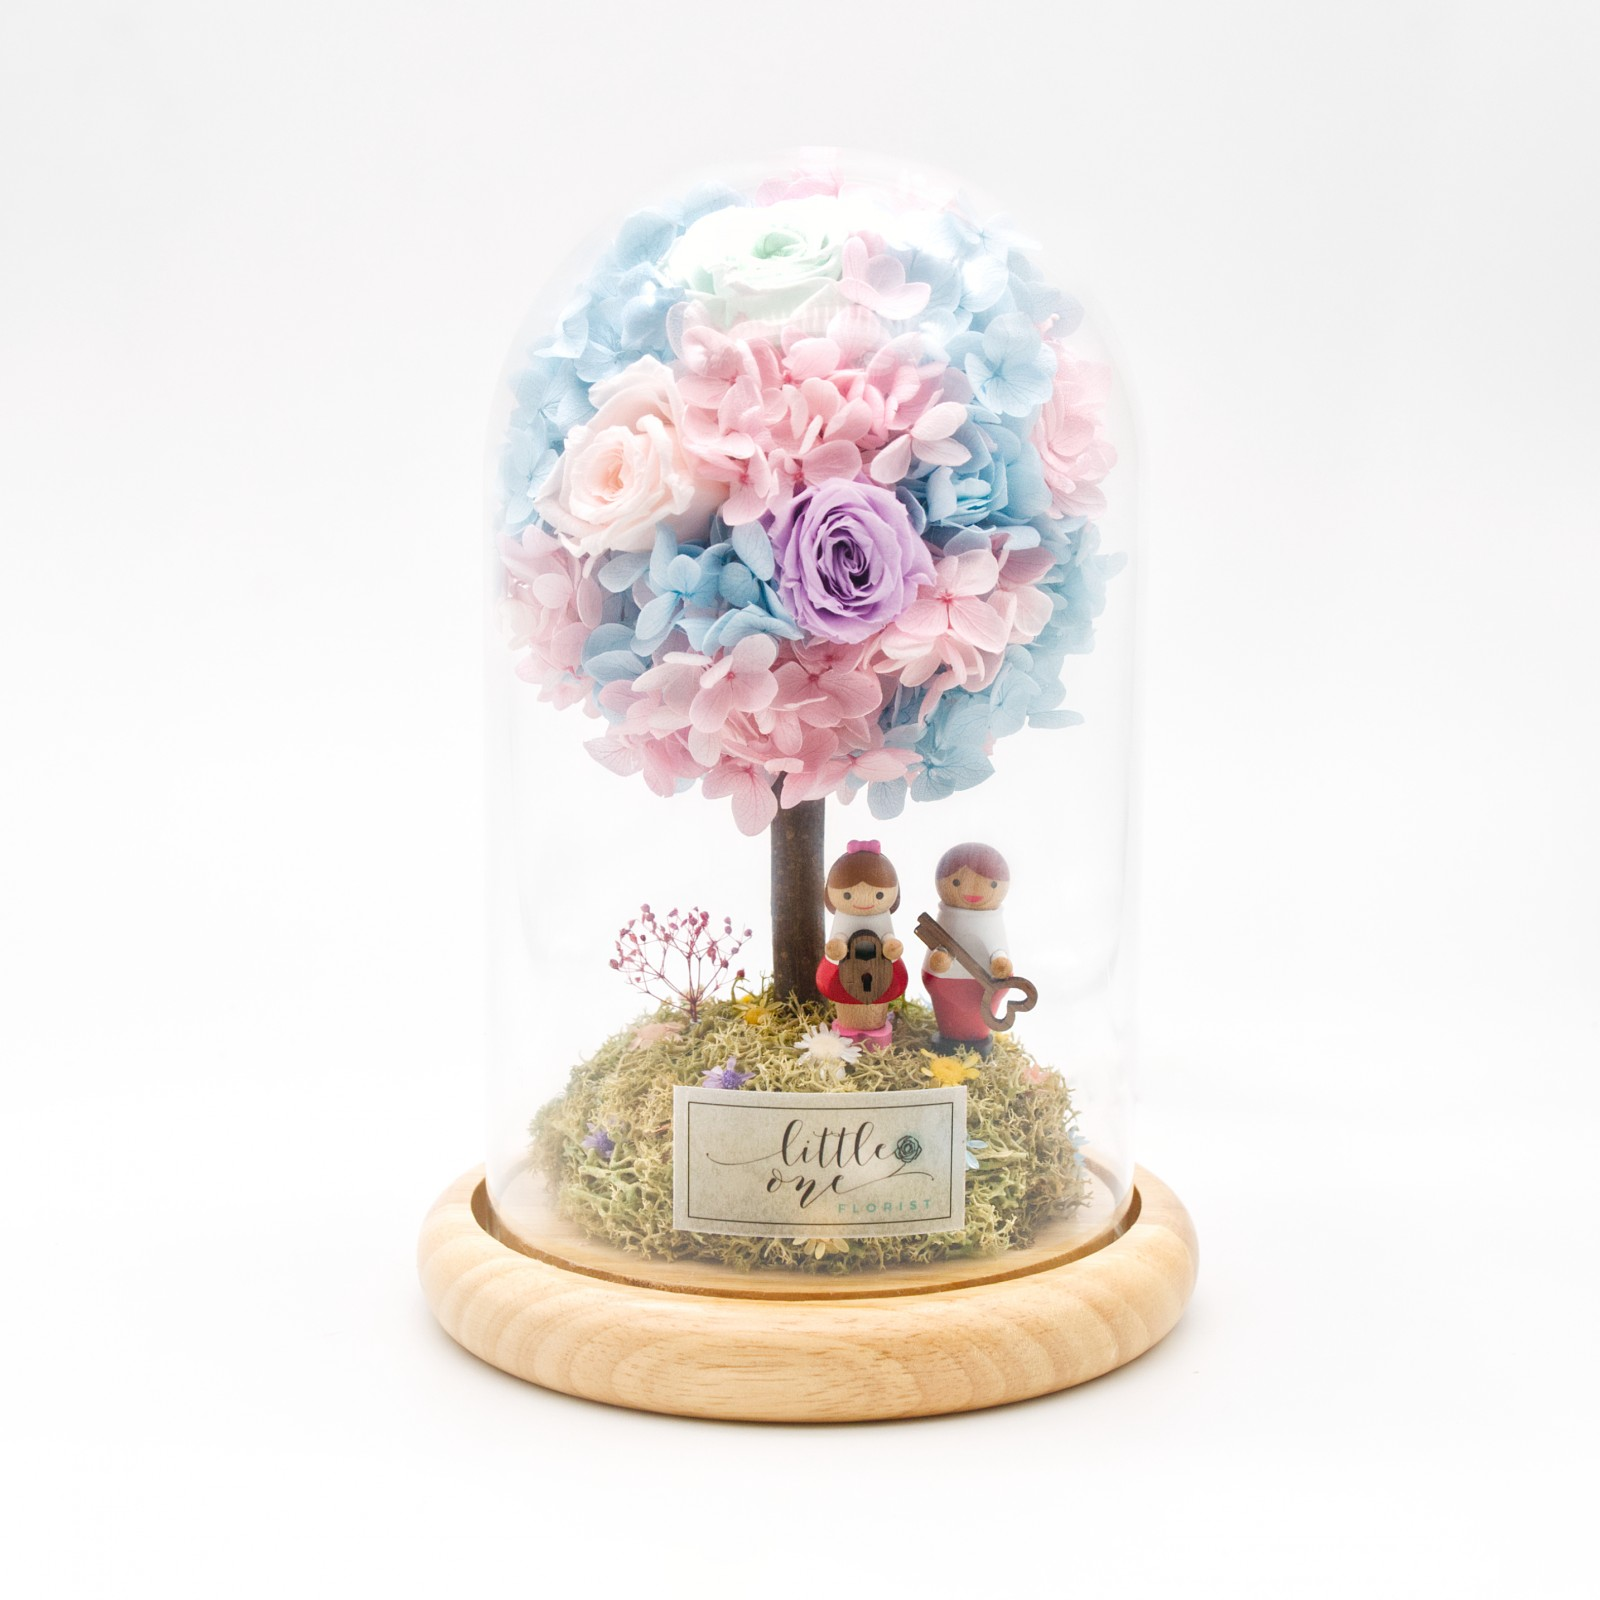 Glowing Little Tree Series - Key to your heart